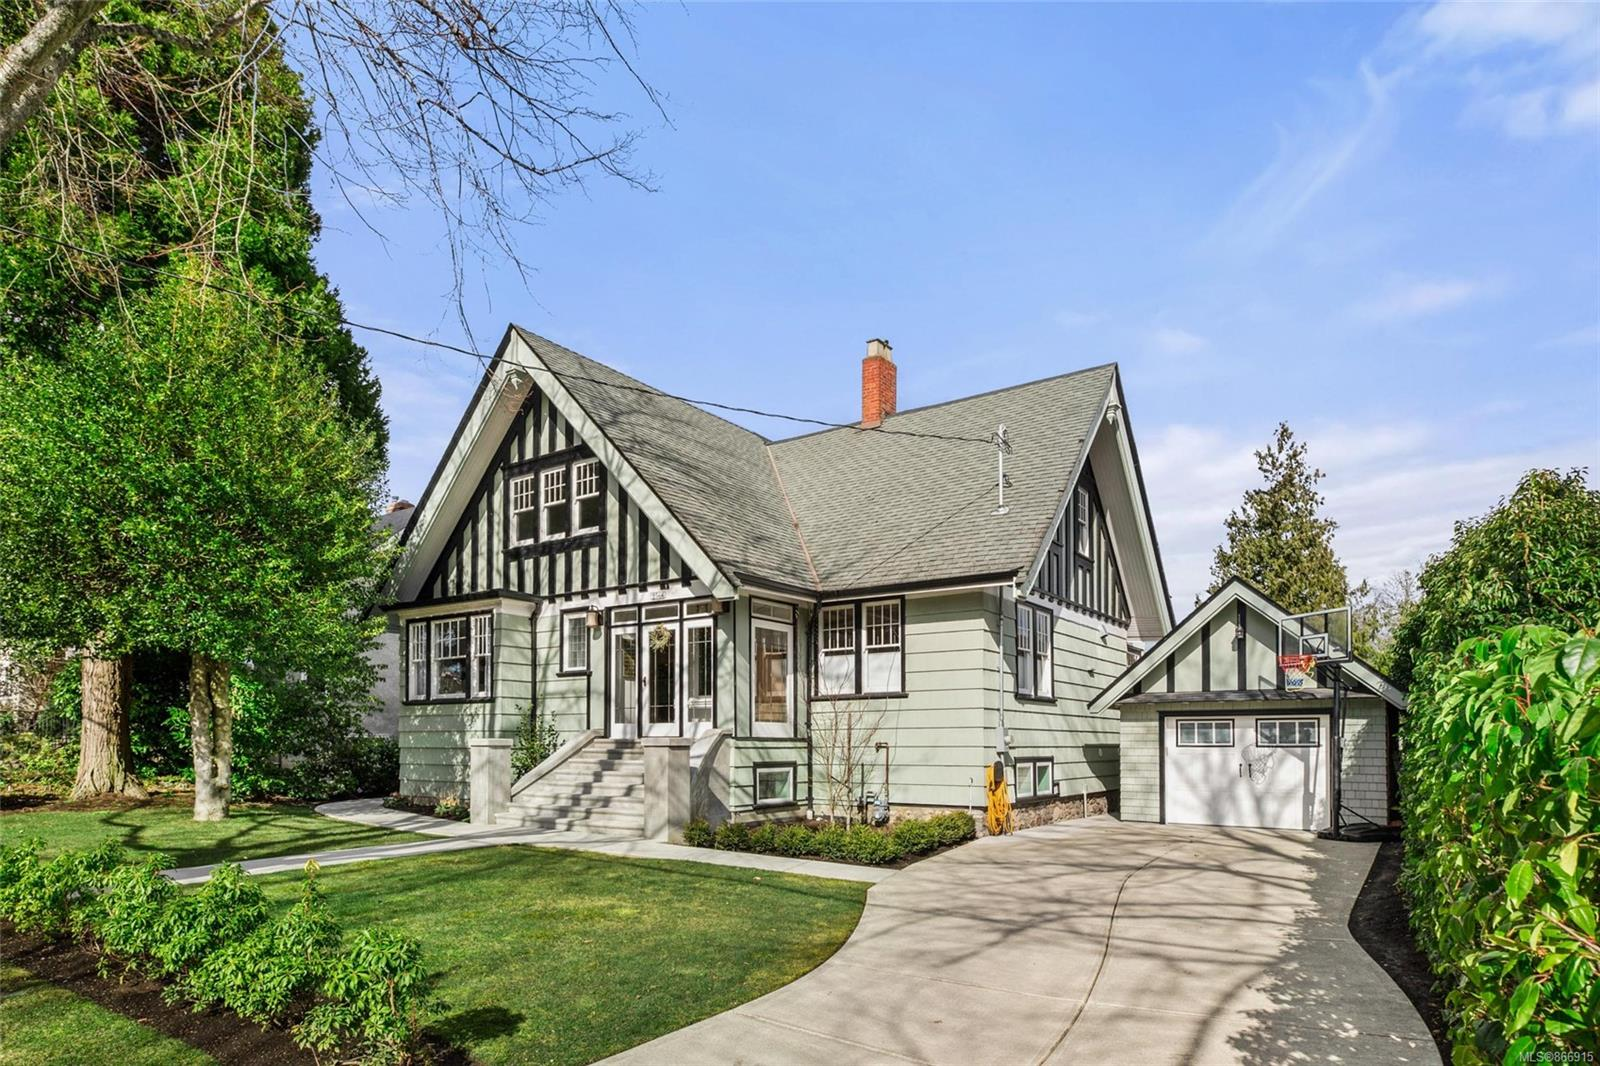 "Welcome home to your gorgeously rejuvenated 1908 built residence. Located just a short stroll from Willows Beach in Oak Bay, your new home features 5 bed & 4 bath. Updated from the ground up by RGD & Jenny Martin Designs, JT Construction & Splinters Millwork to create a stunning property including a full-height basement proving ~ 4,200sqft of living space - an ideal family home. A perfect creation marrying original character inc. hardwood floors & stained glass to the stunning gourmet kitchen w/48"" Wolf Dual Fuel range w/double griddle, 42""French door sub-zero fridge, wolf steam oven & cabinetry detailing that must be seen. Upstairs is the Principle bed w/stunning ensuite & 2 additional beds. Mechanically new w/Dual gas Heat Pumps w/5 control zones, updated electrical & plumping incl outdoor shower. If you like outdoor living then be prepared to be impressed with the two-level concrete deck w/gas BBQ & fire table h/ups, & sunken hot tub. A magazine-worthy timeless designed home. Enjoy!"